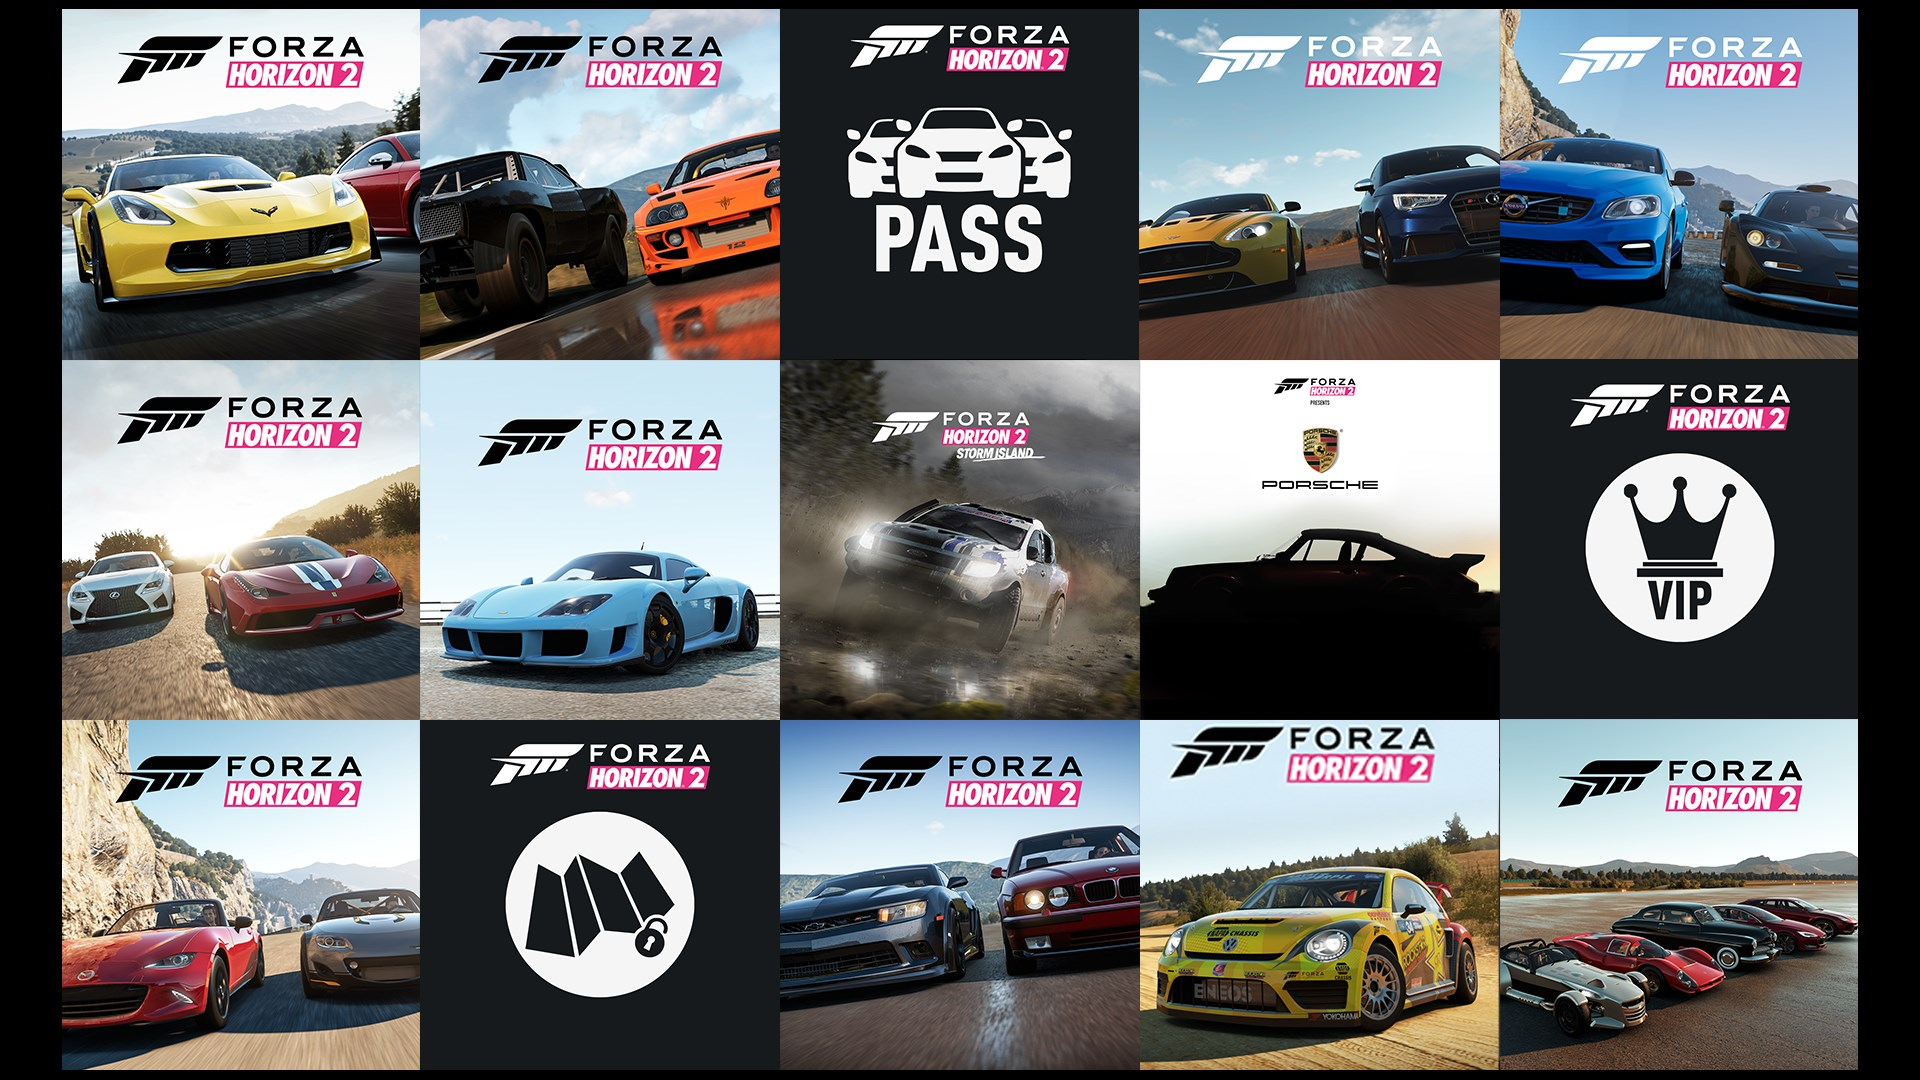 Forza Horizon 2 Complete Add-Ons Collection